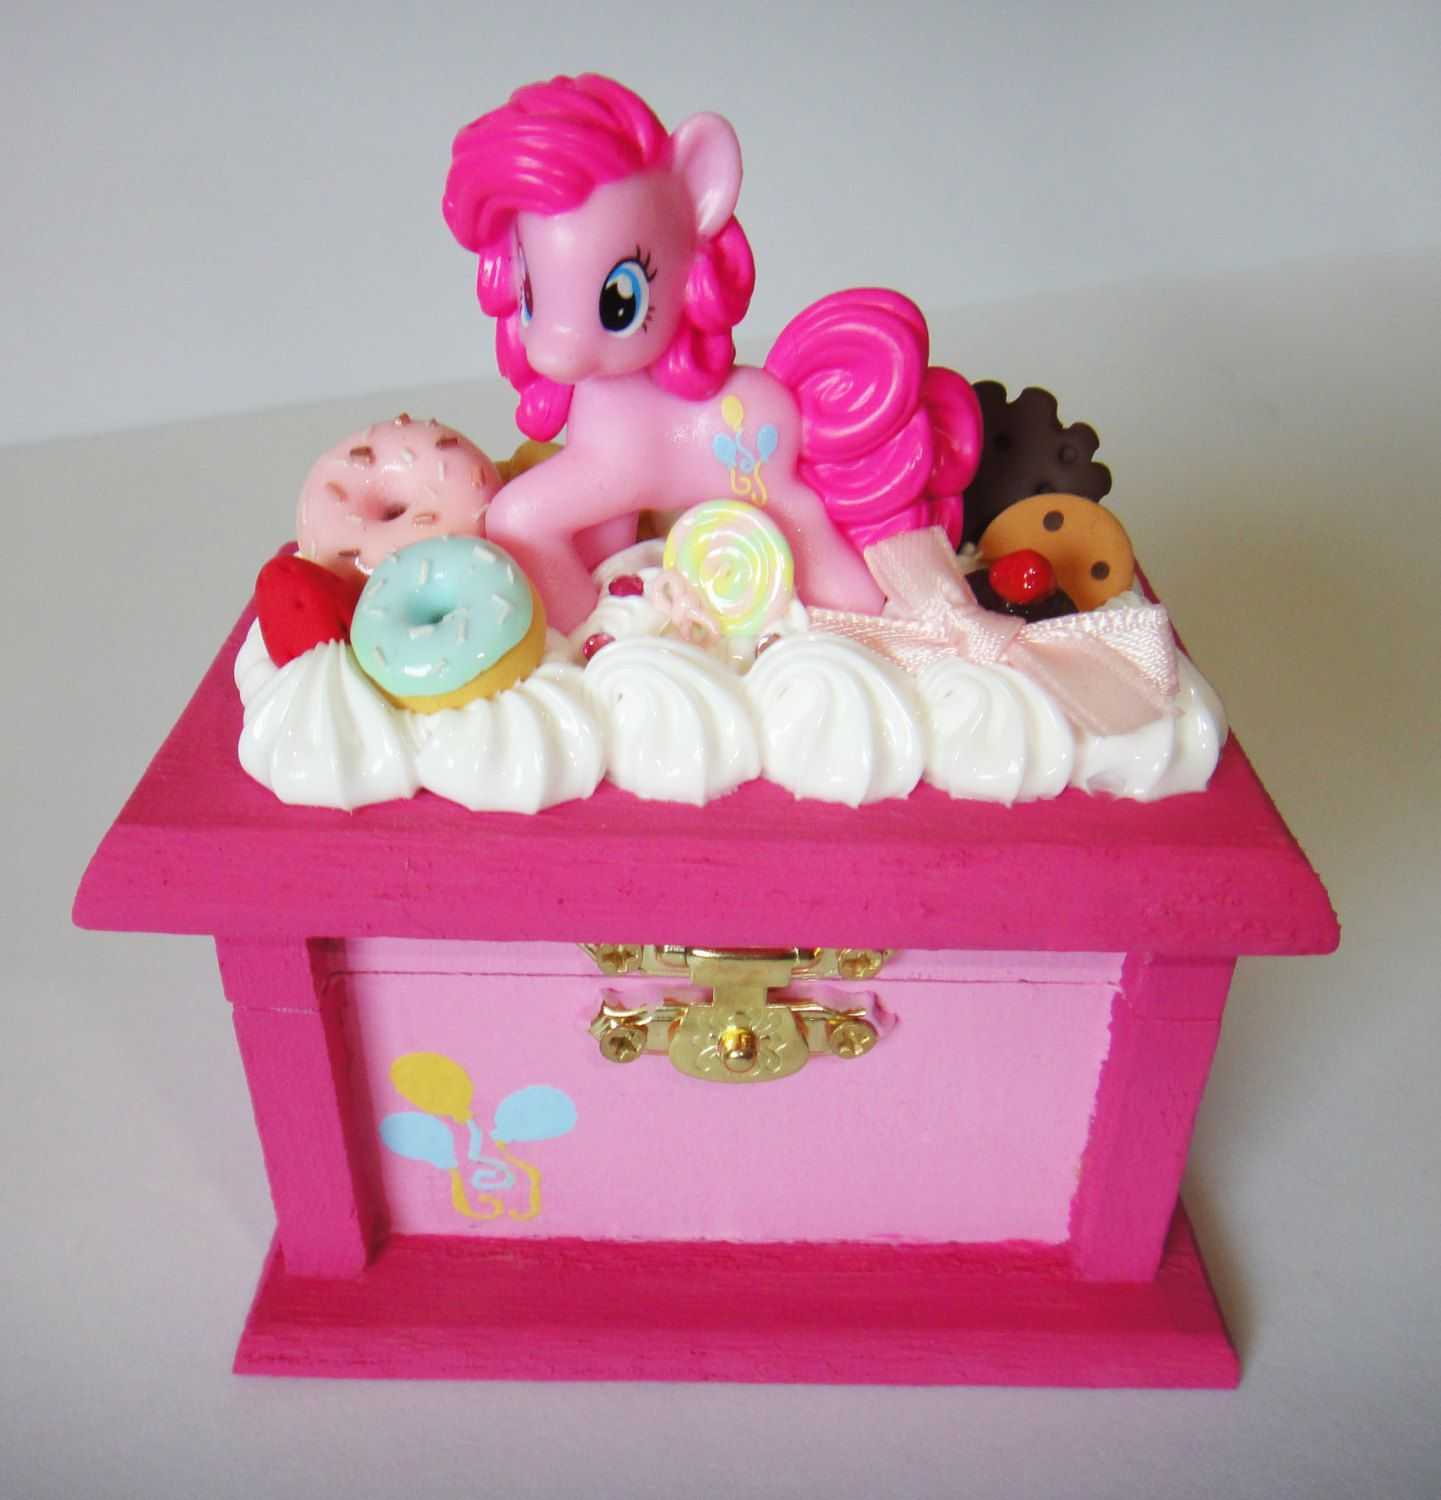 My Little Pony Jewelry Box Enchanting Wooden Trinket Jewelry Box With Clay Pastries And Miniature My Inspiration